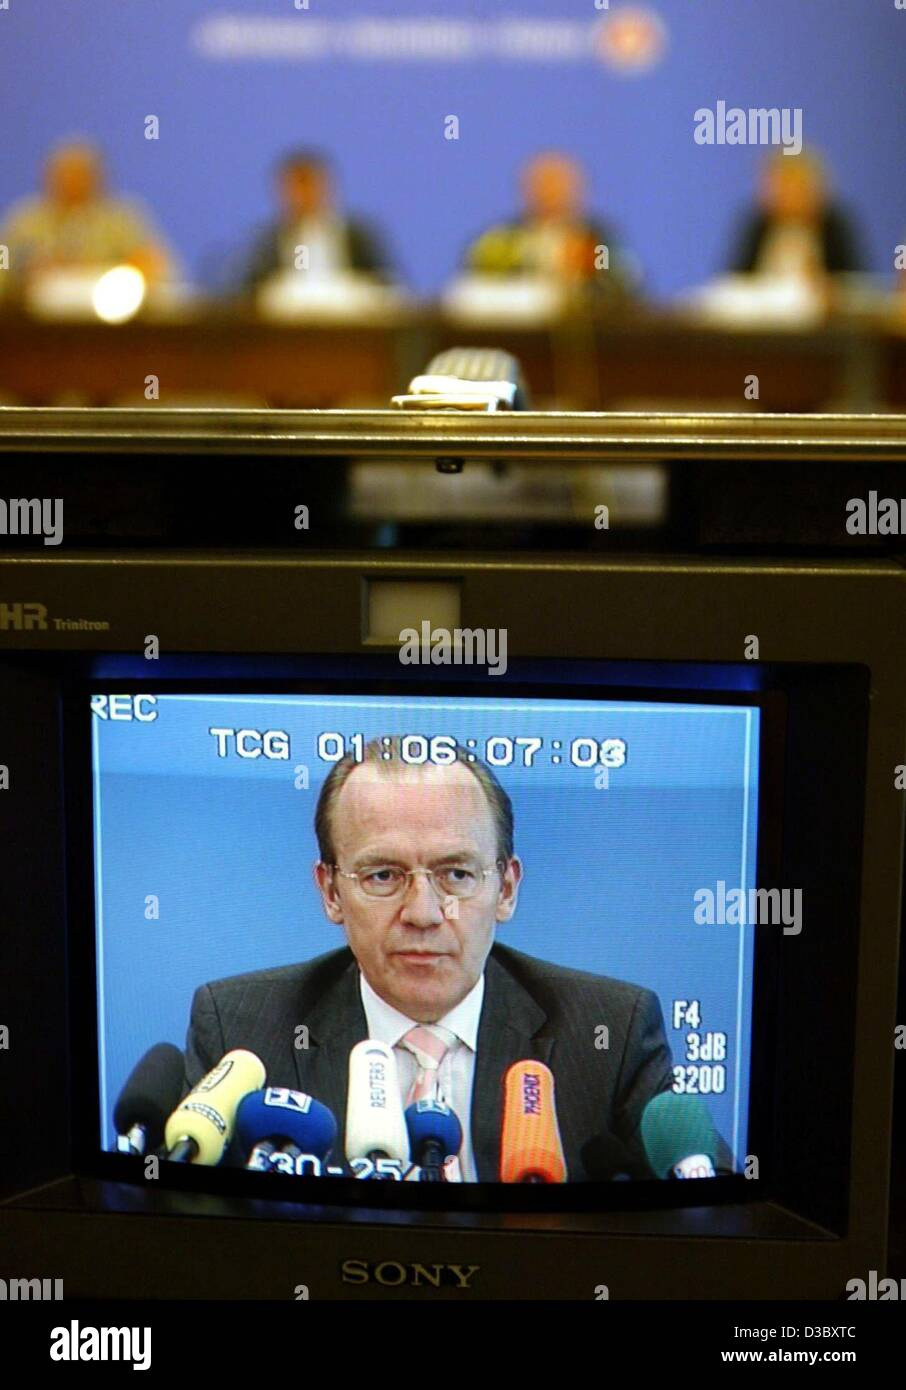 (dpa) - Florian Gerster, Chairman of the Federal Employment Office, is seen on a tv screen as he presents the latest - Stock Image